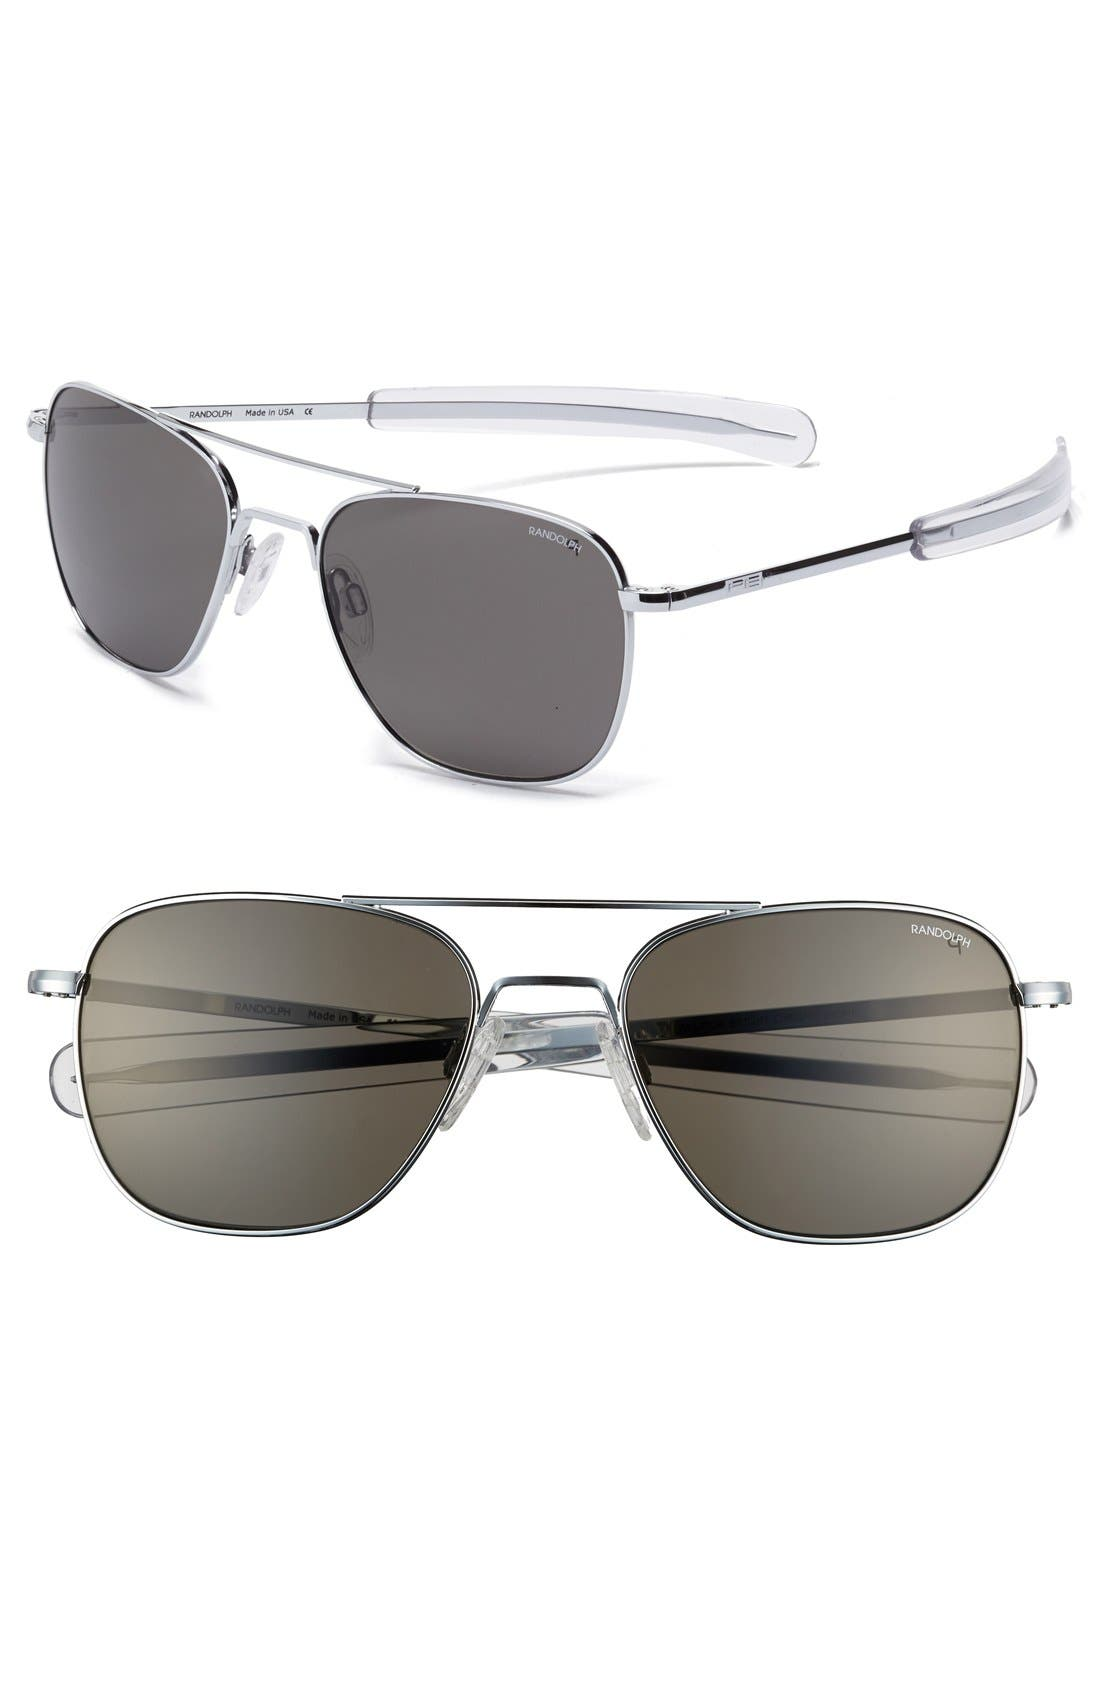 55mm Polarized Aviator Sunglasses,                         Main,                         color, Bright Chrome/ Grey